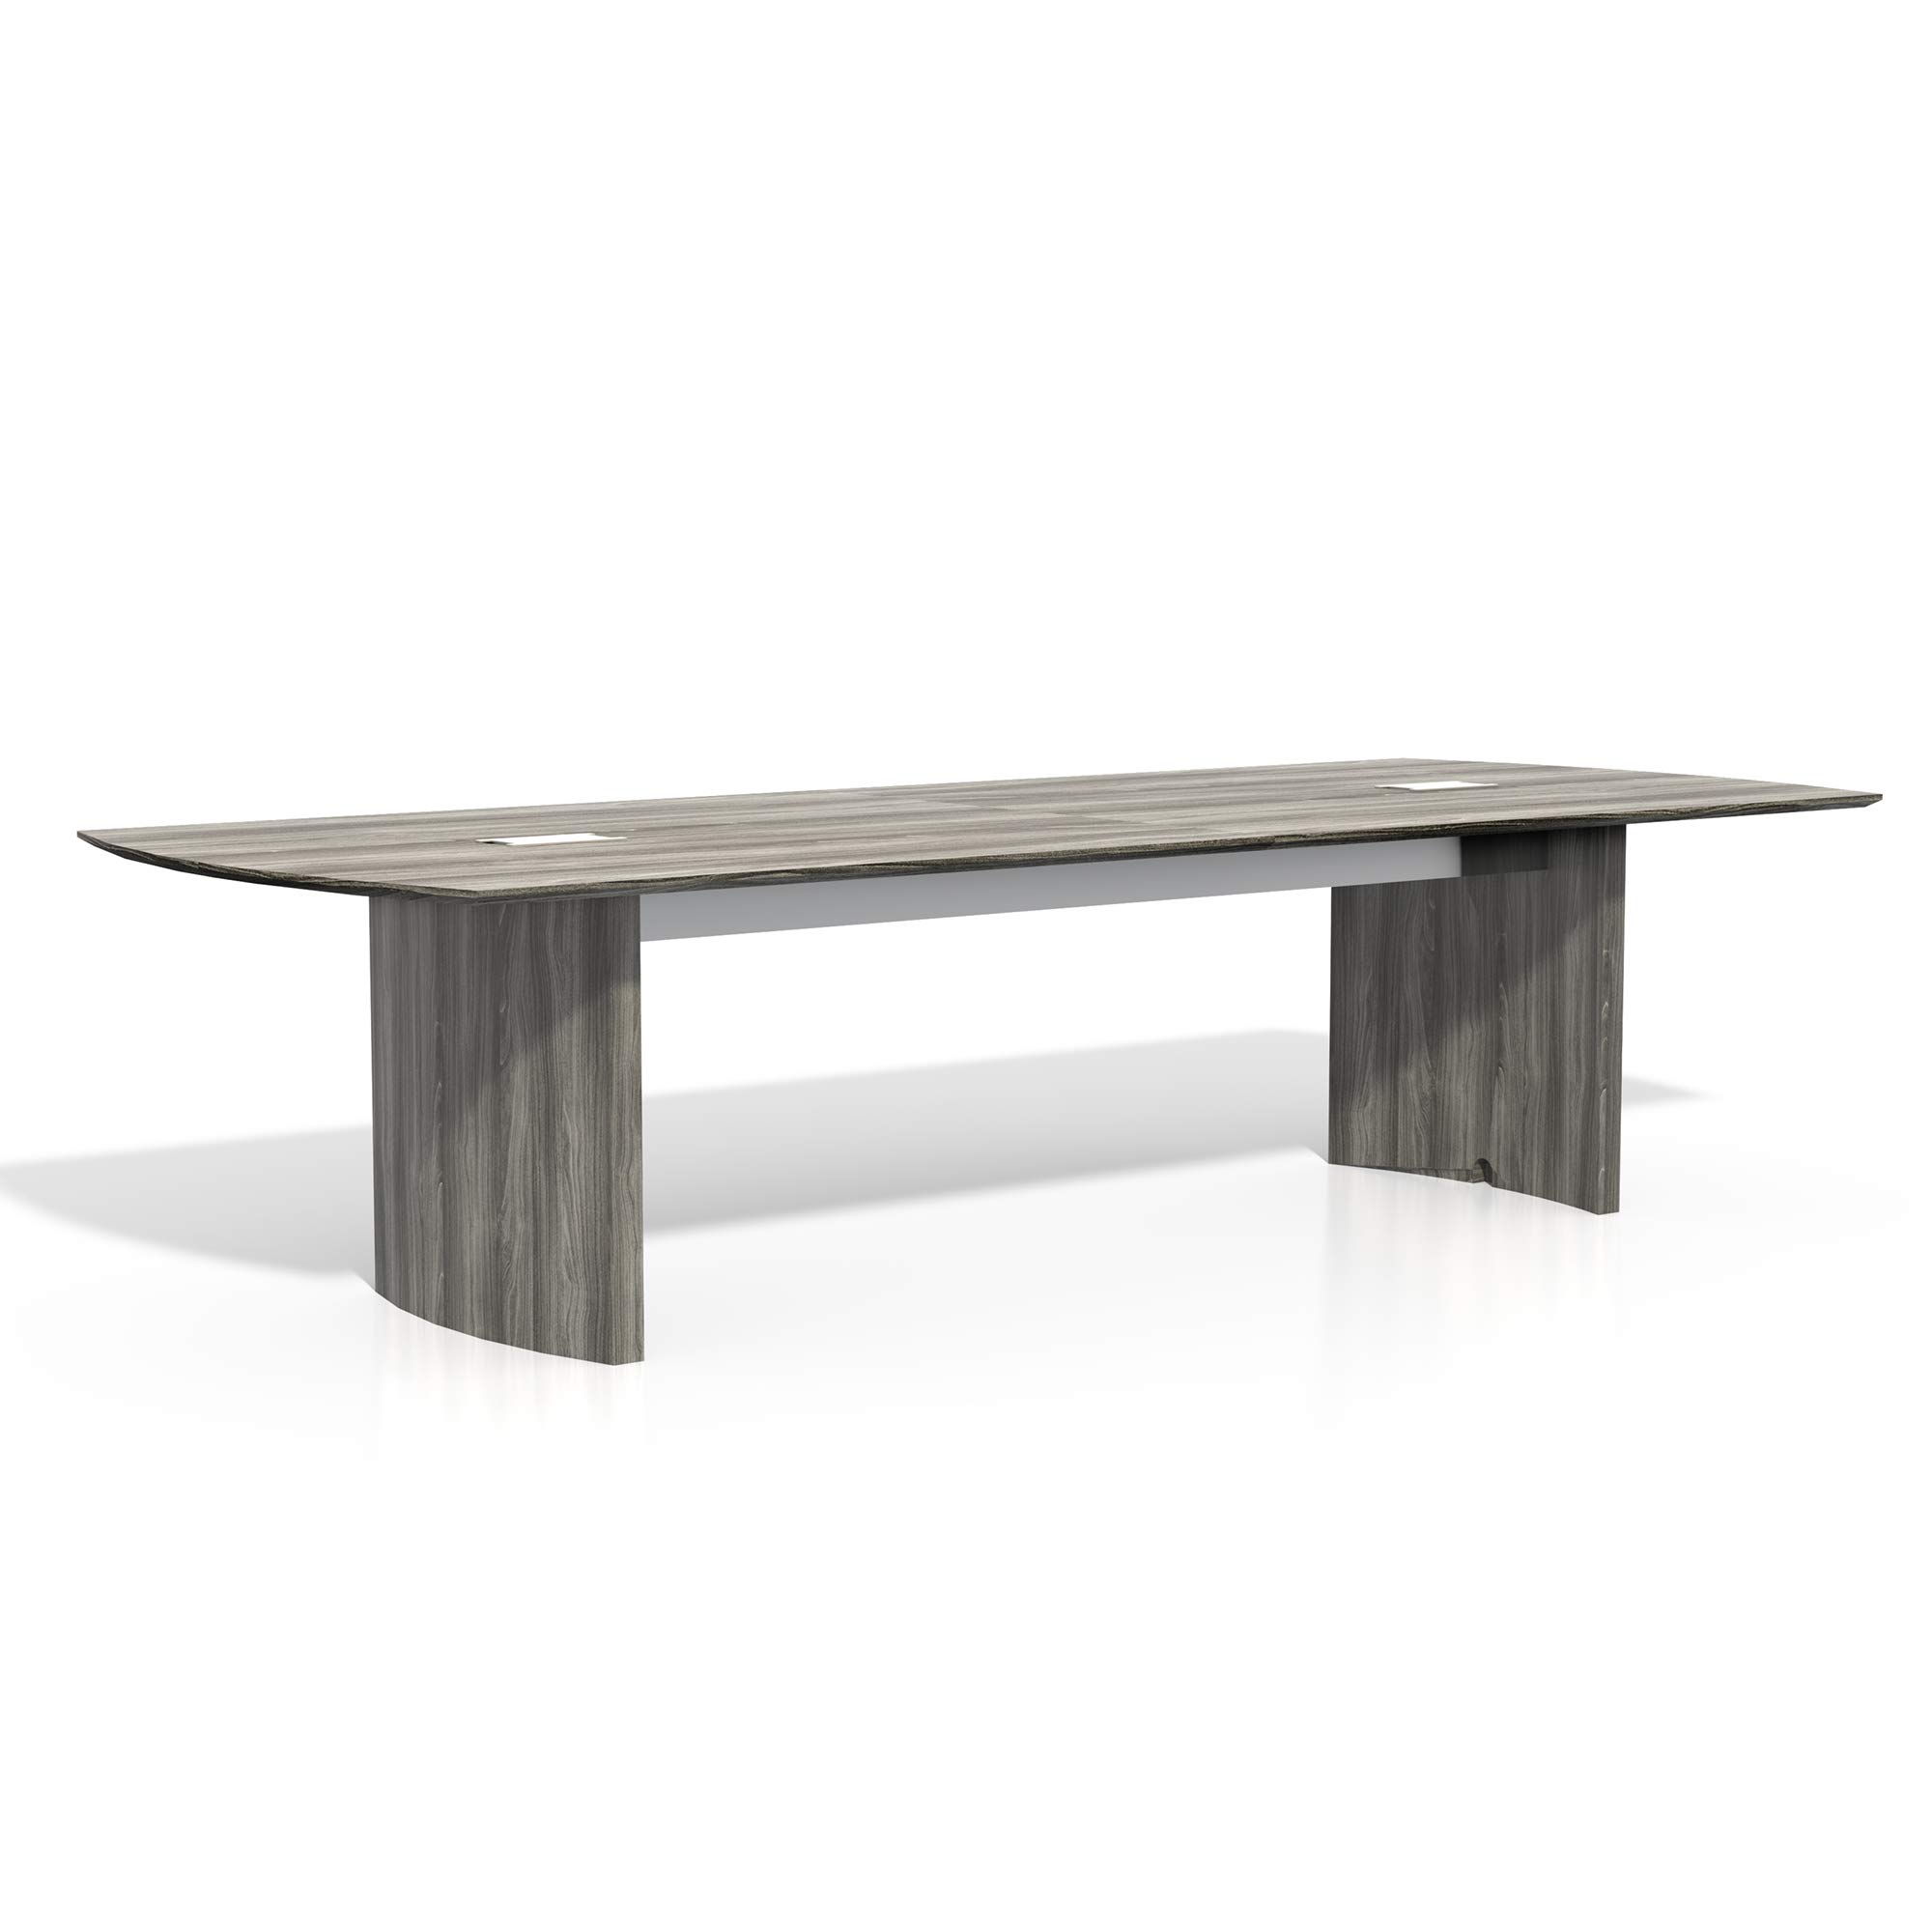 Safco Products MNC10LGS Medina Table 10' Gray Steel by Safco Products (Image #1)